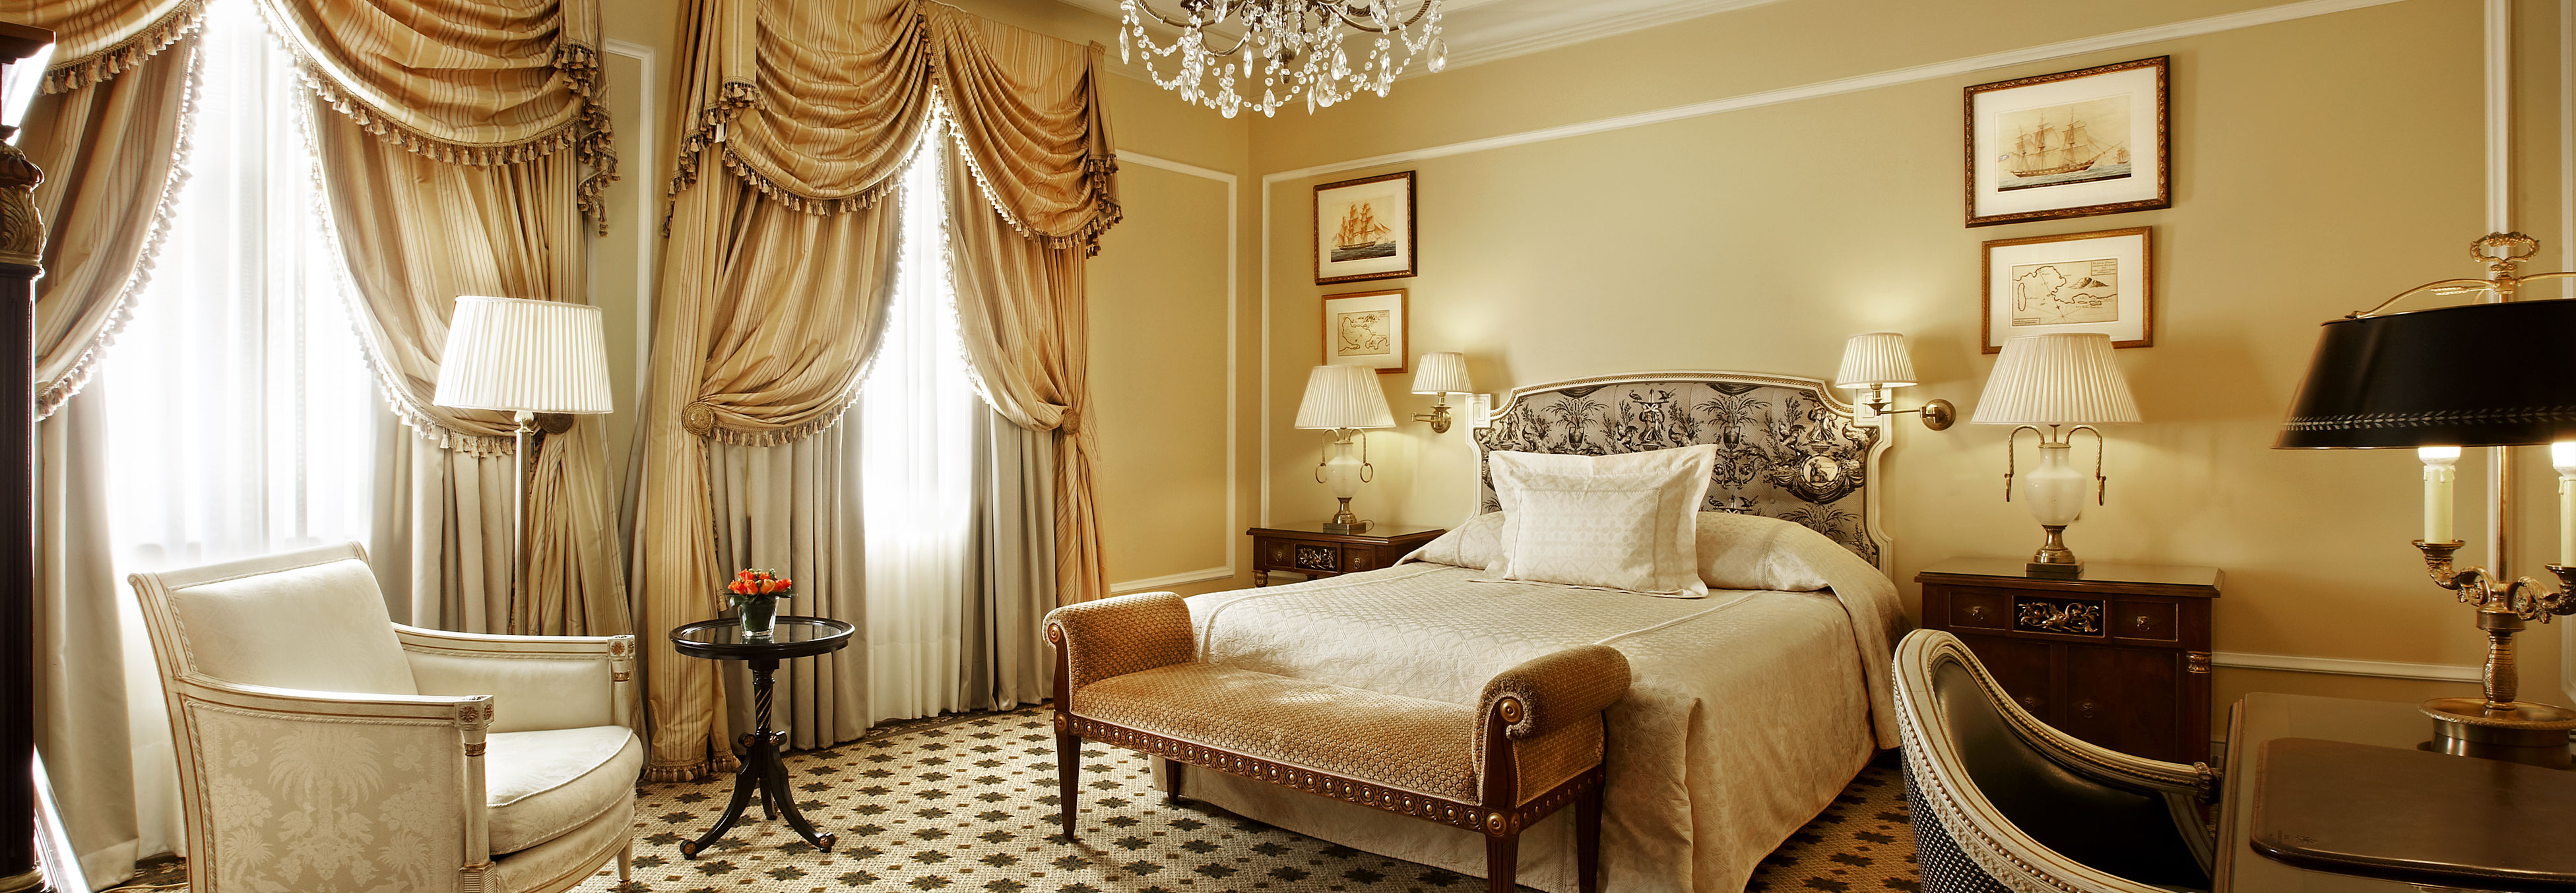 Grand Bretagne - Luxury Athens Greece Holiday Hotel - Ker & Downey